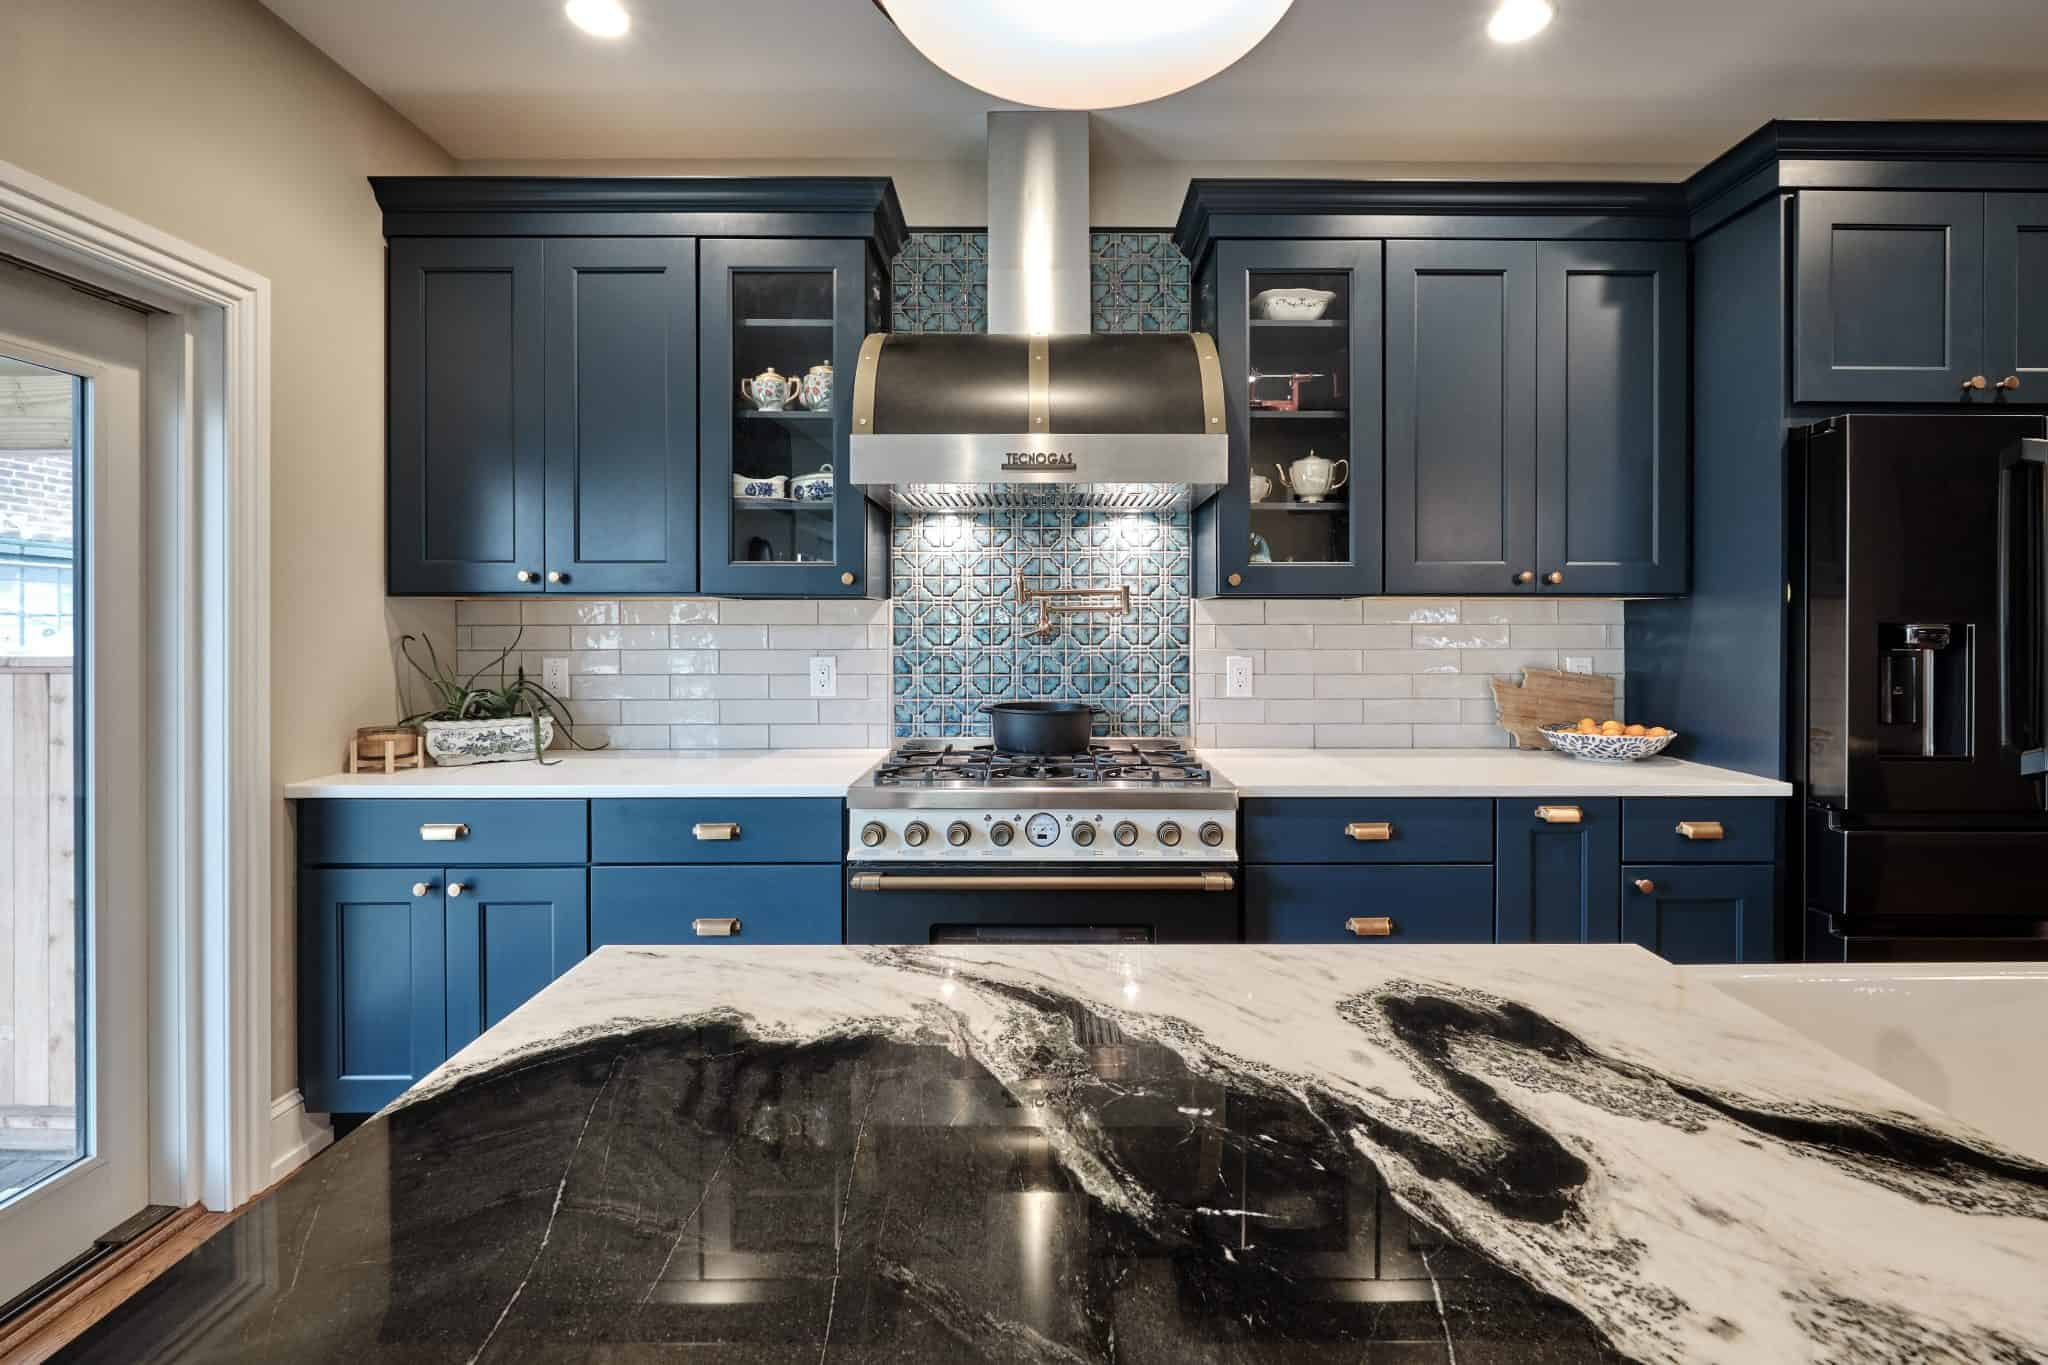 Blue Kitchen by a Home Remodeling Contractors in Bucks County PA